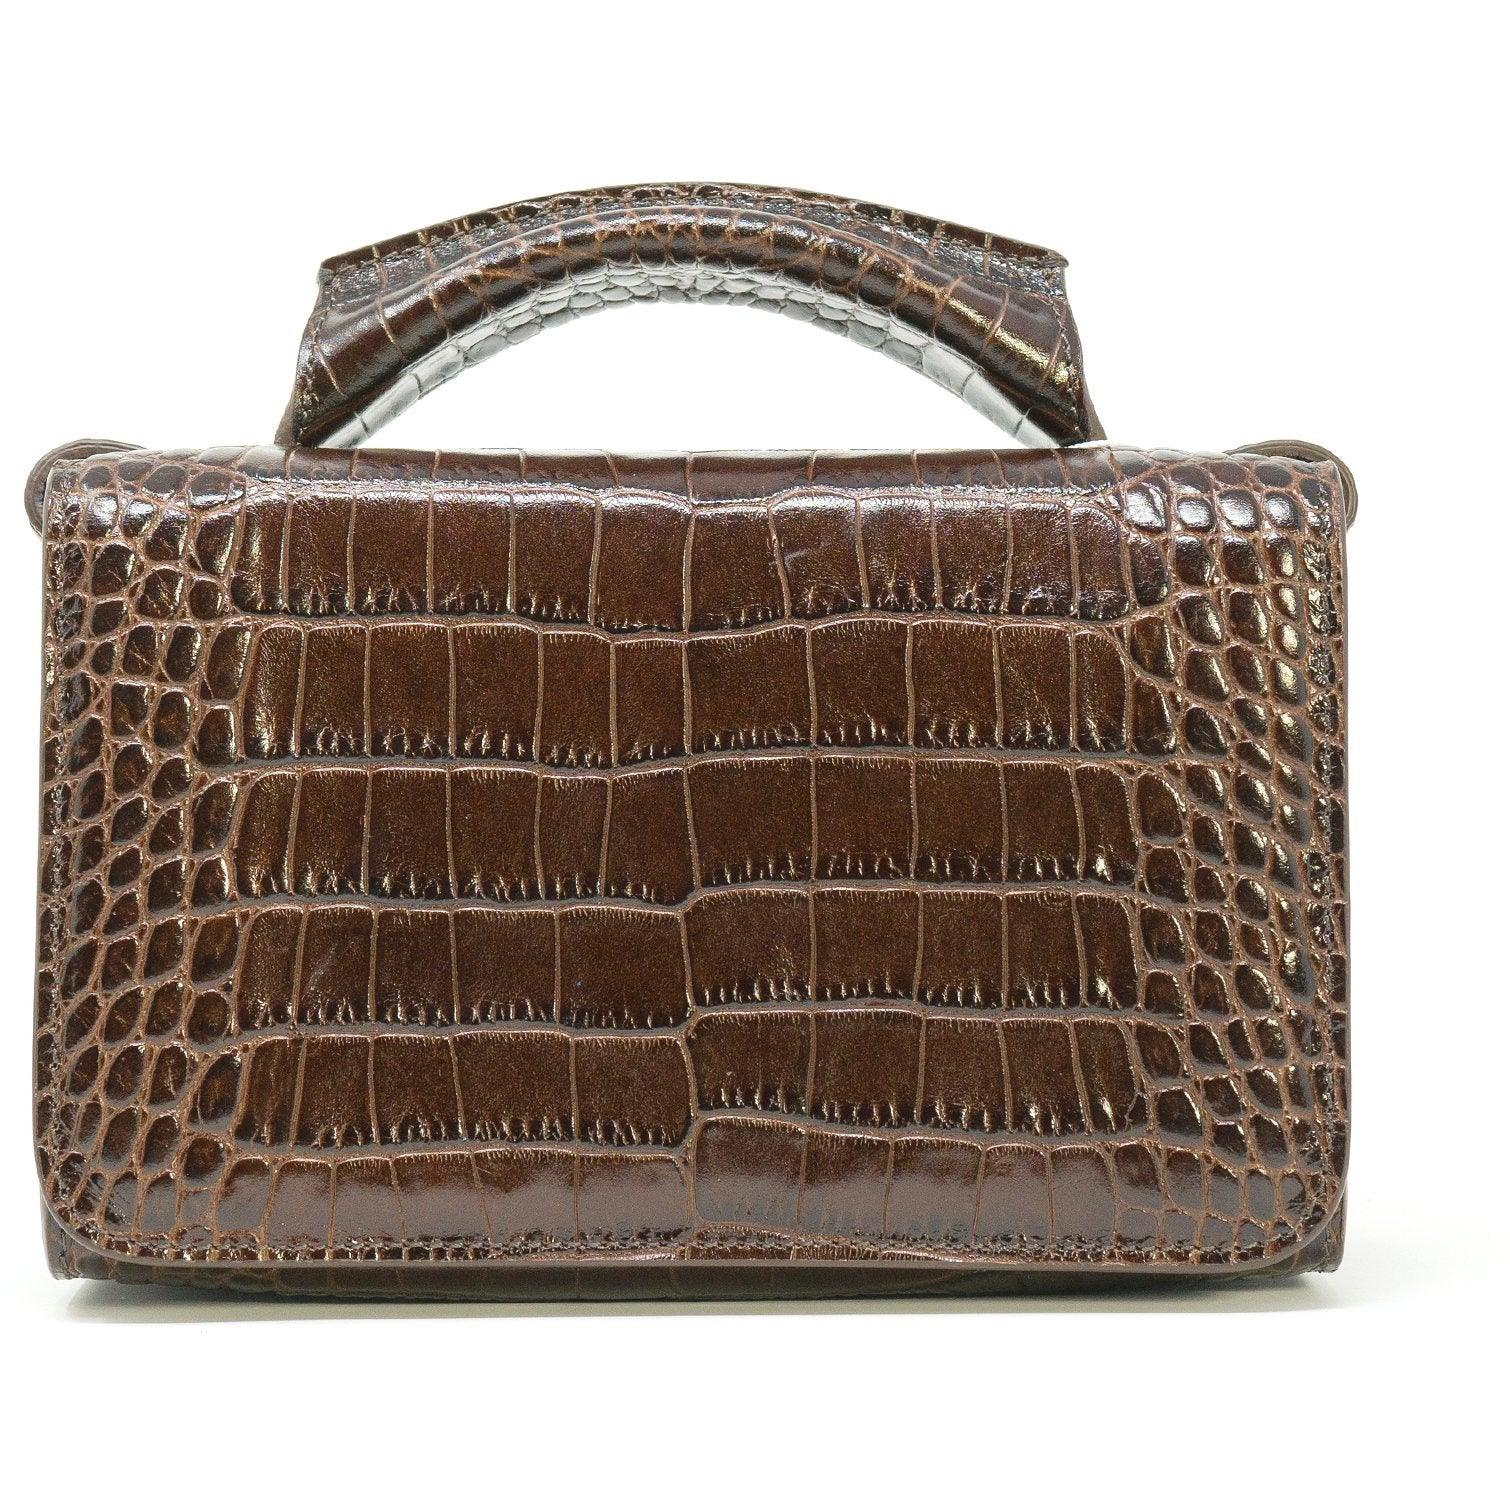 JT331 F003 Top Handle Printed Crocodile Bag - New Fall Winter 2019-2020 Collection